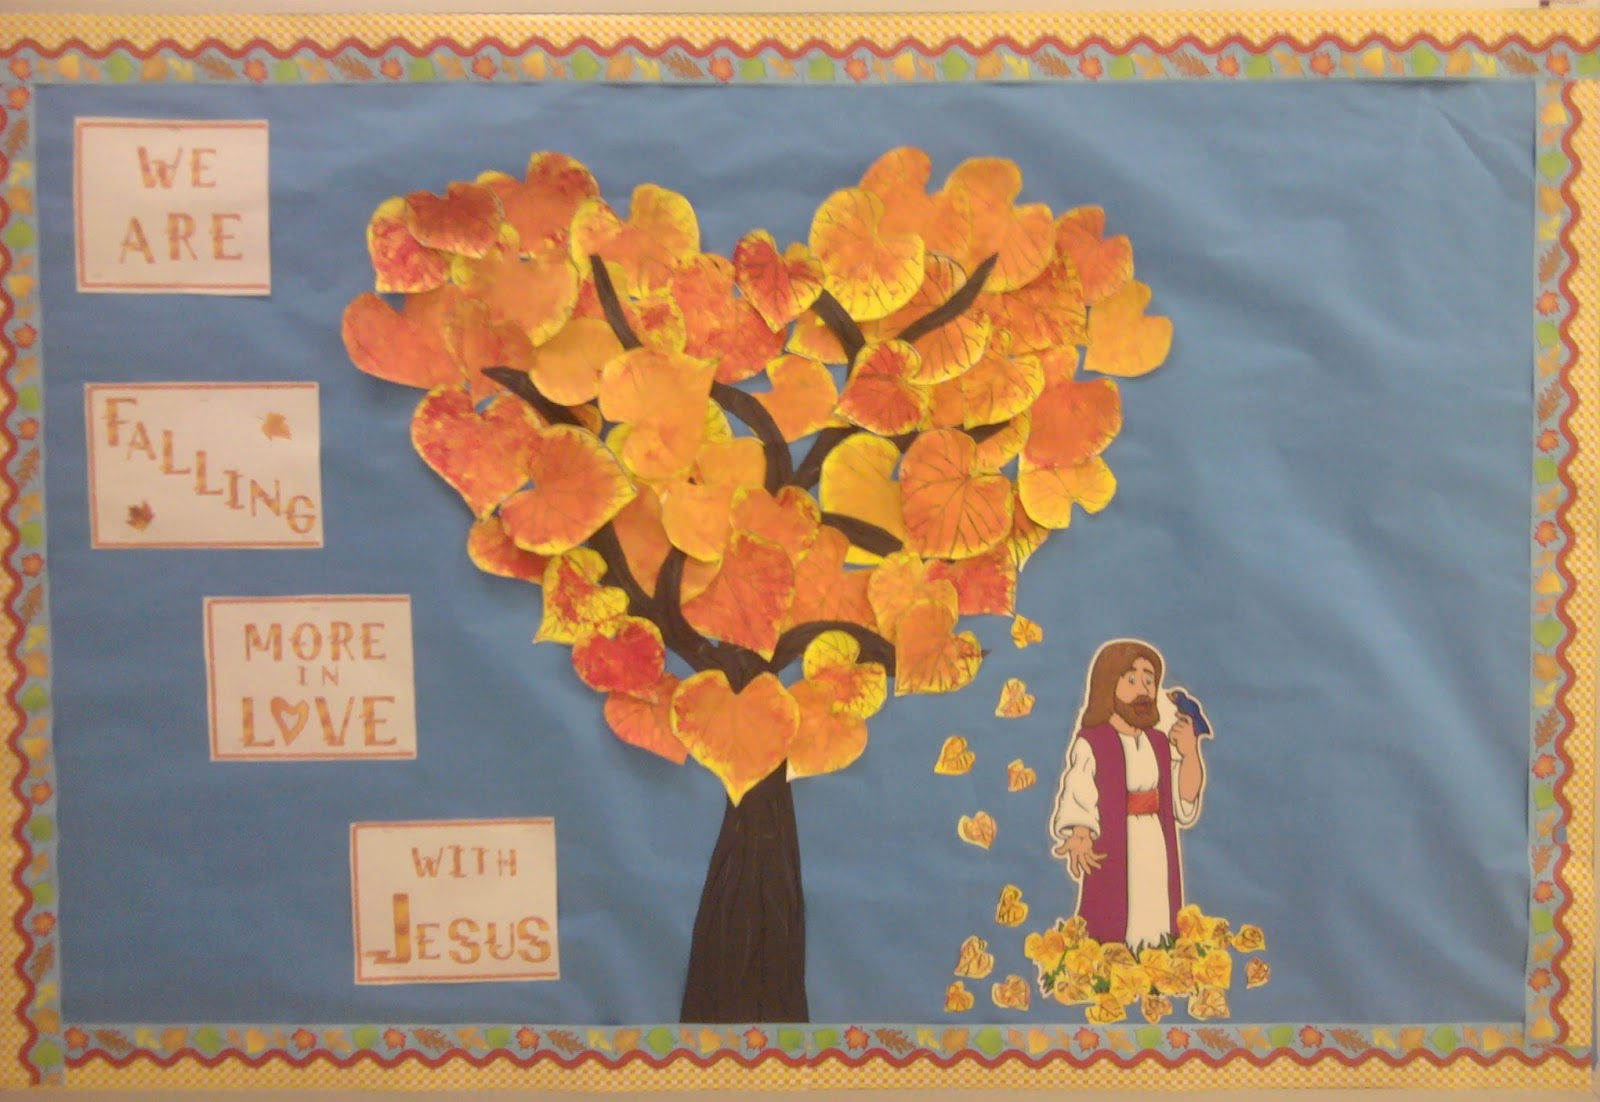 September Bulletin Board Ideas http://cathedralkindergarten.blogspot.com/2012_09_01_archive.html